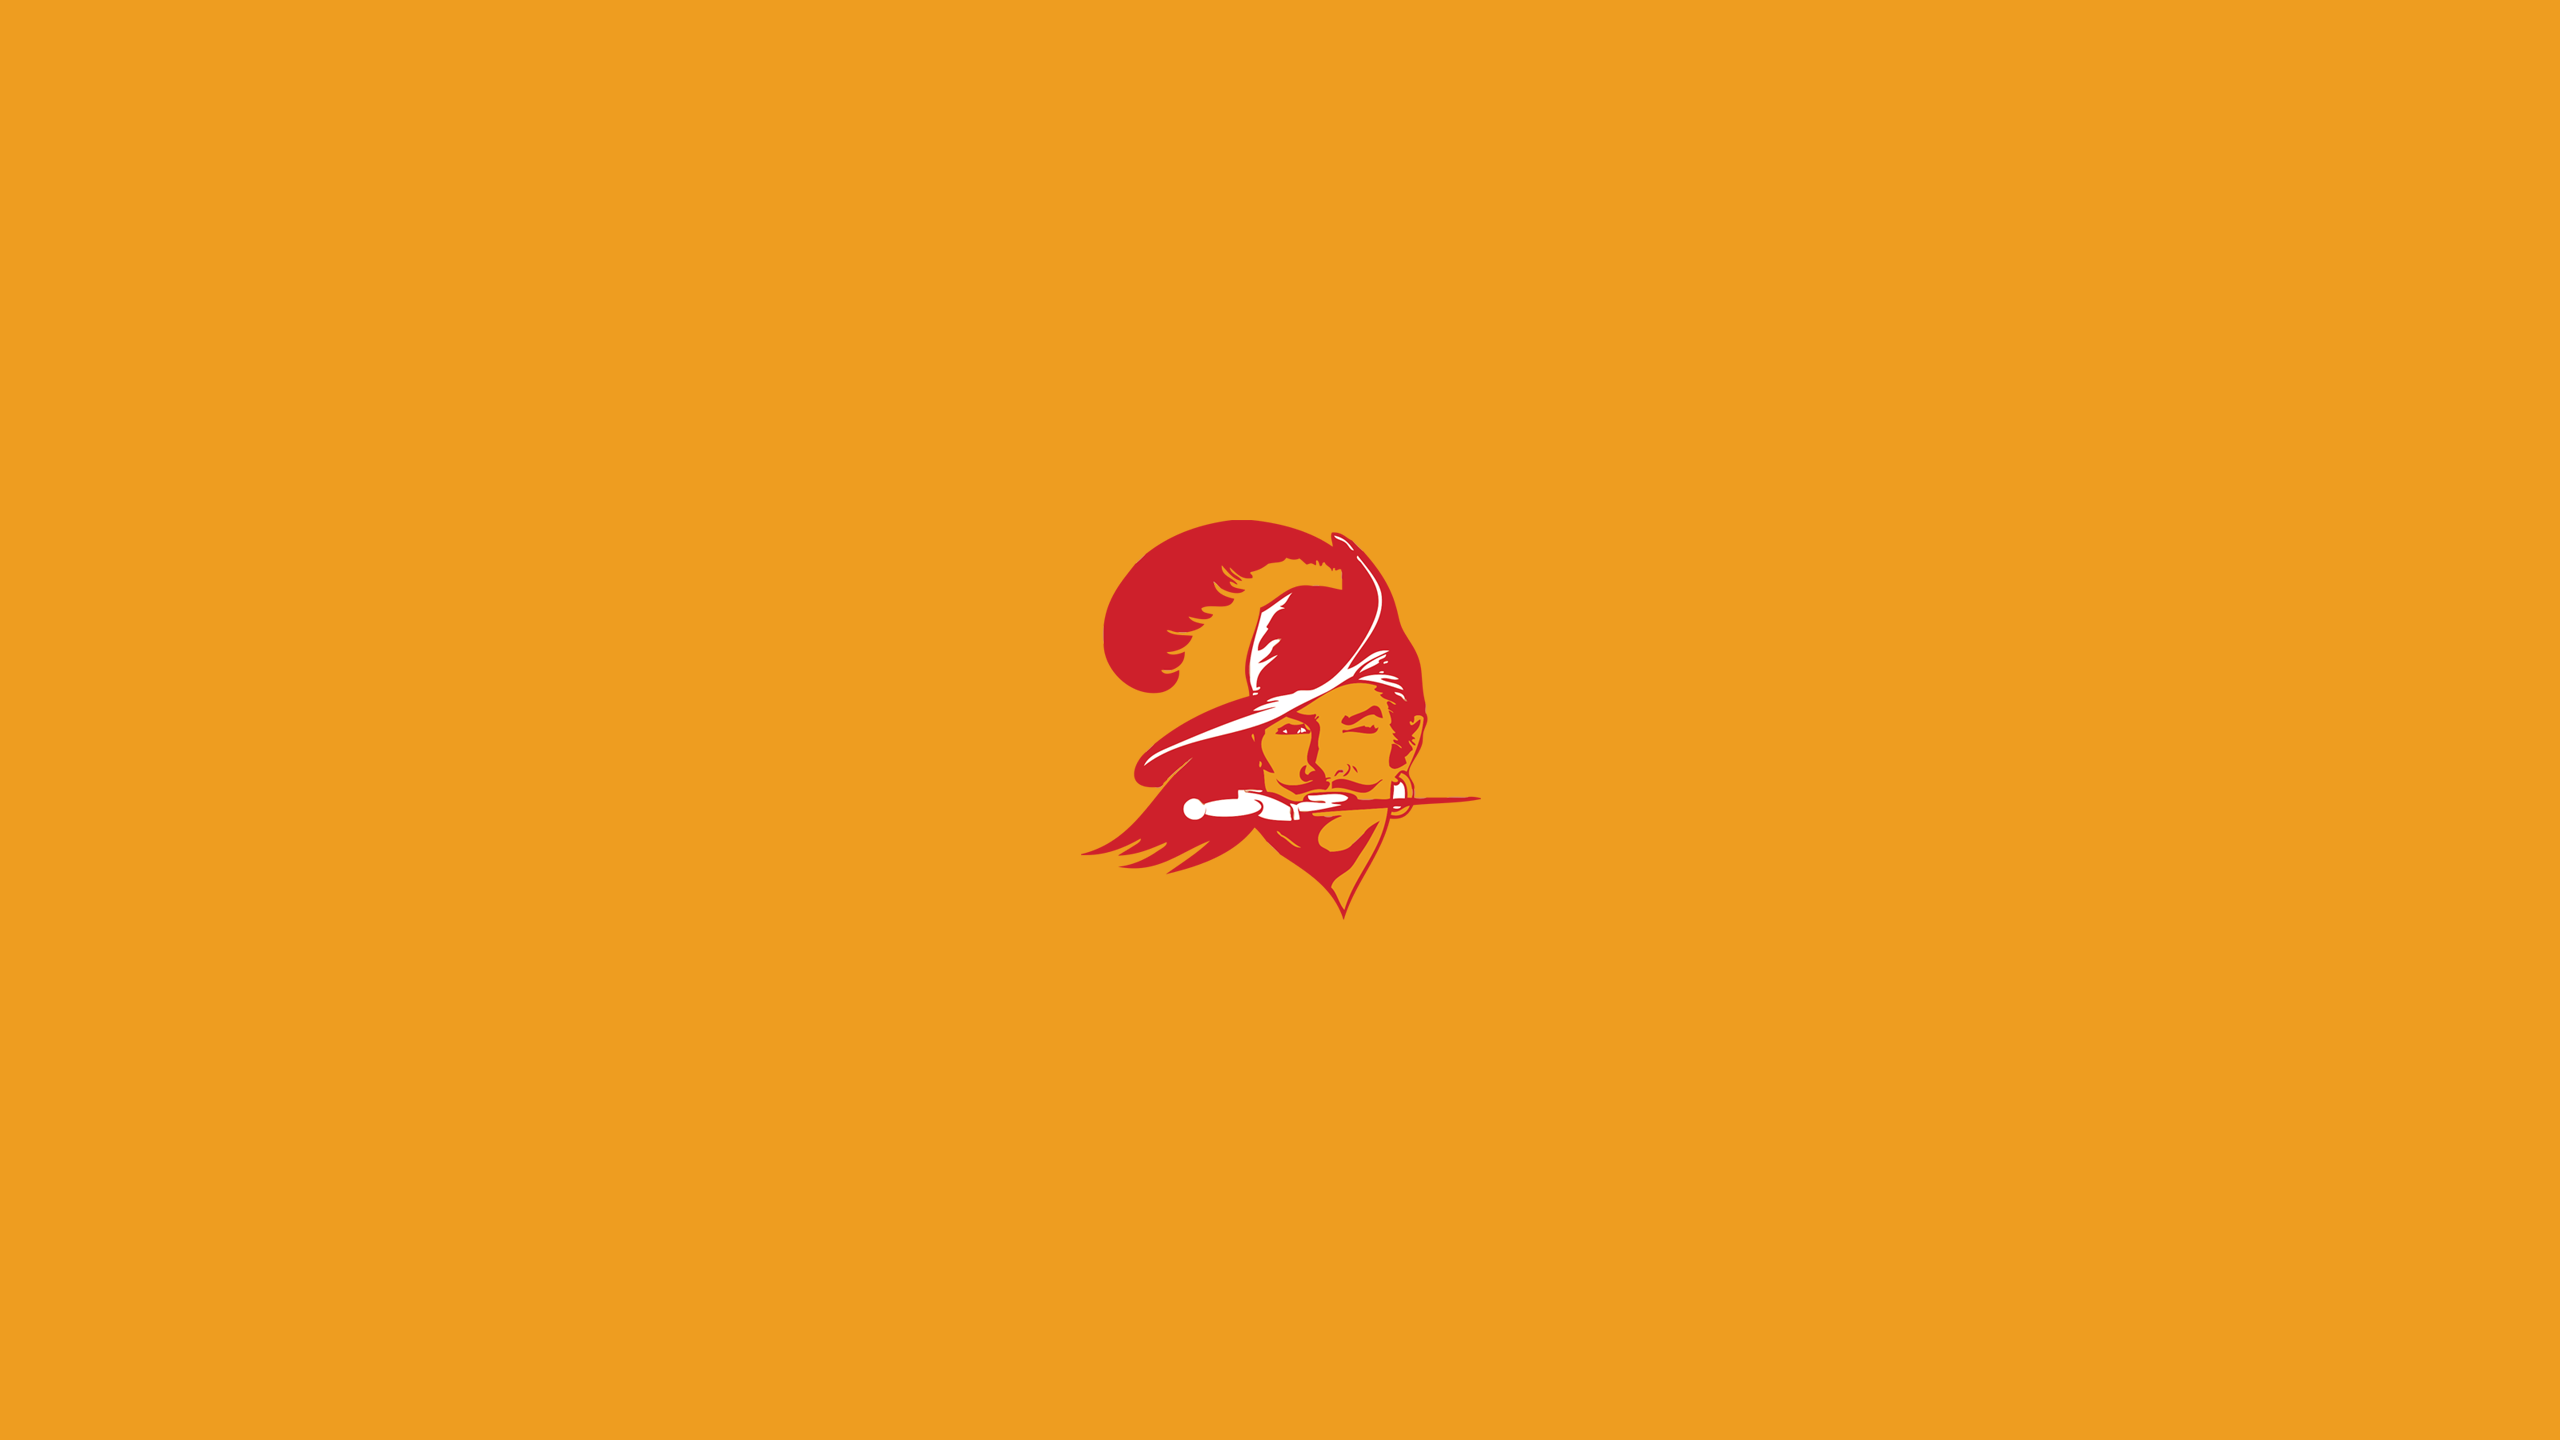 Tampa Bay Buccaneers (Creamsicle)